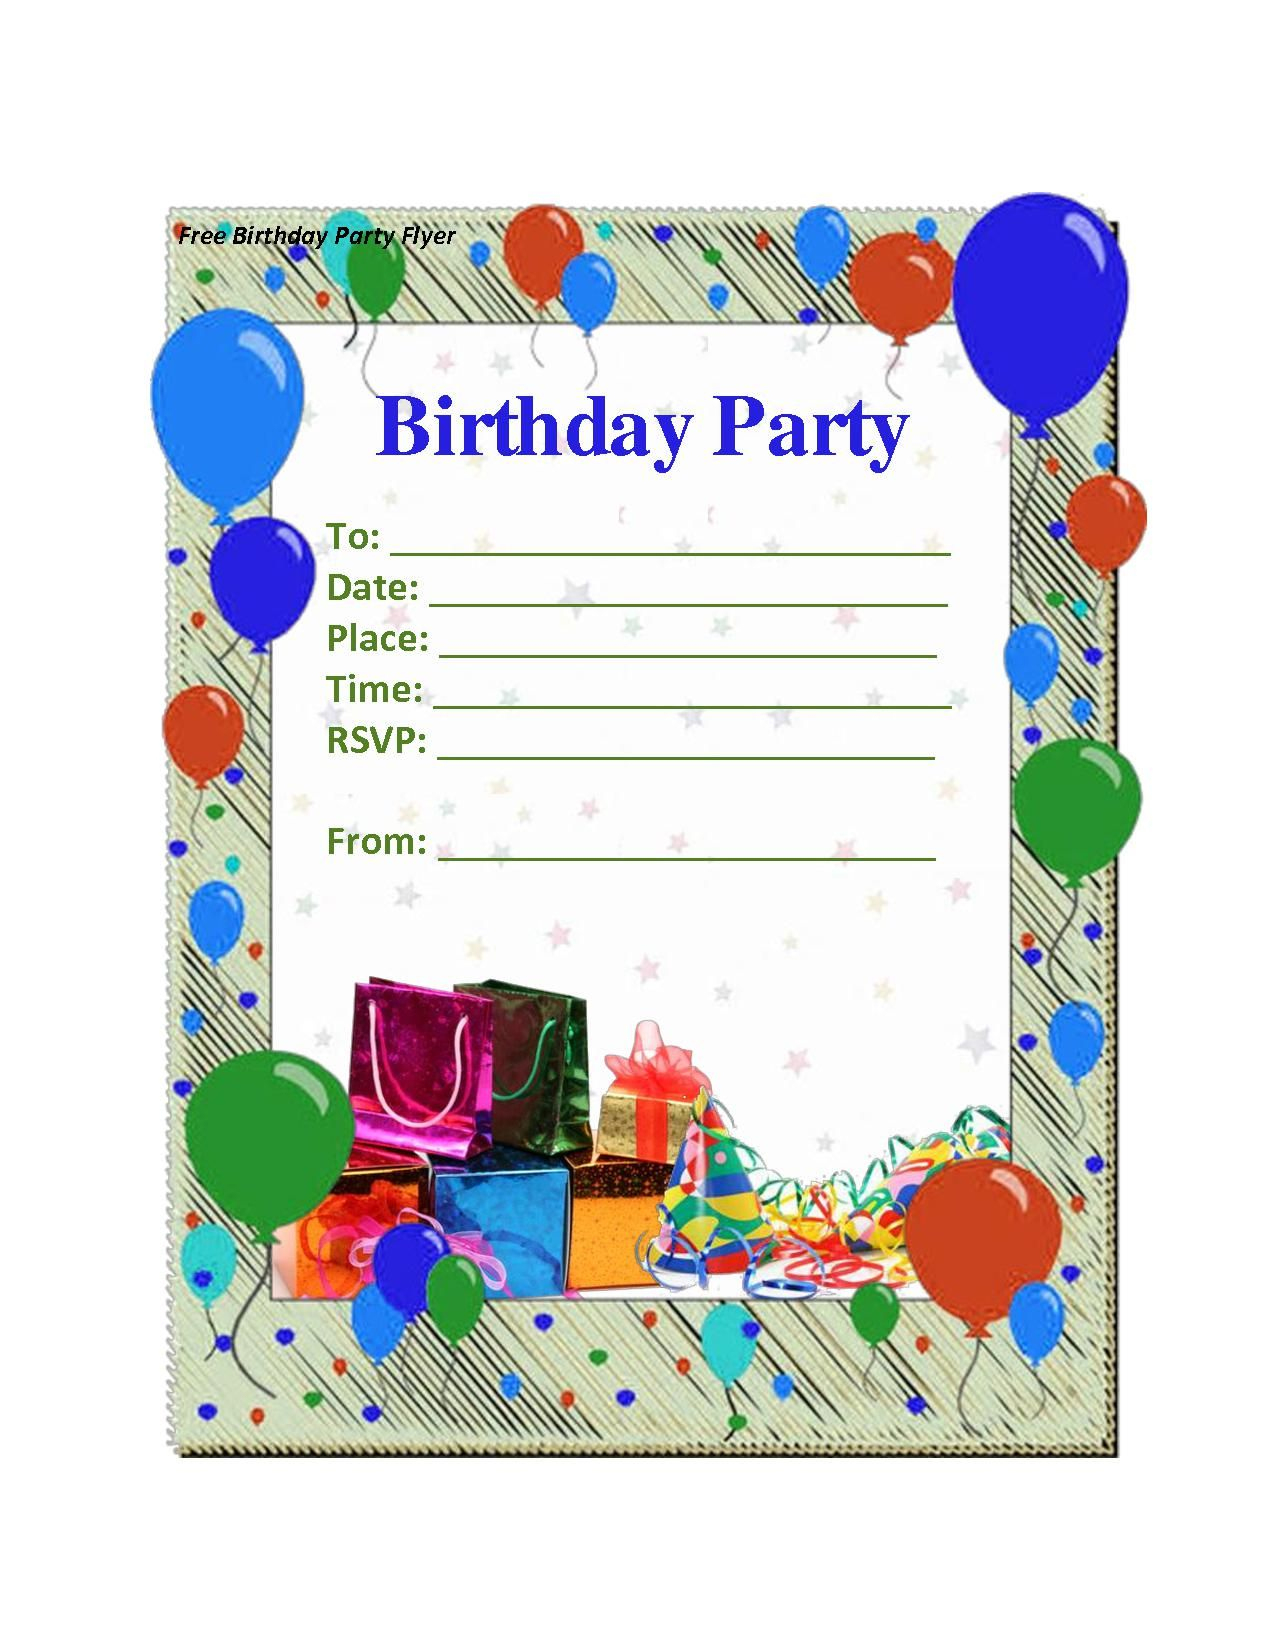 Free Party Invitation Maker Online | Star Wars Party Invitation - Make Printable Party Invitations Online Free